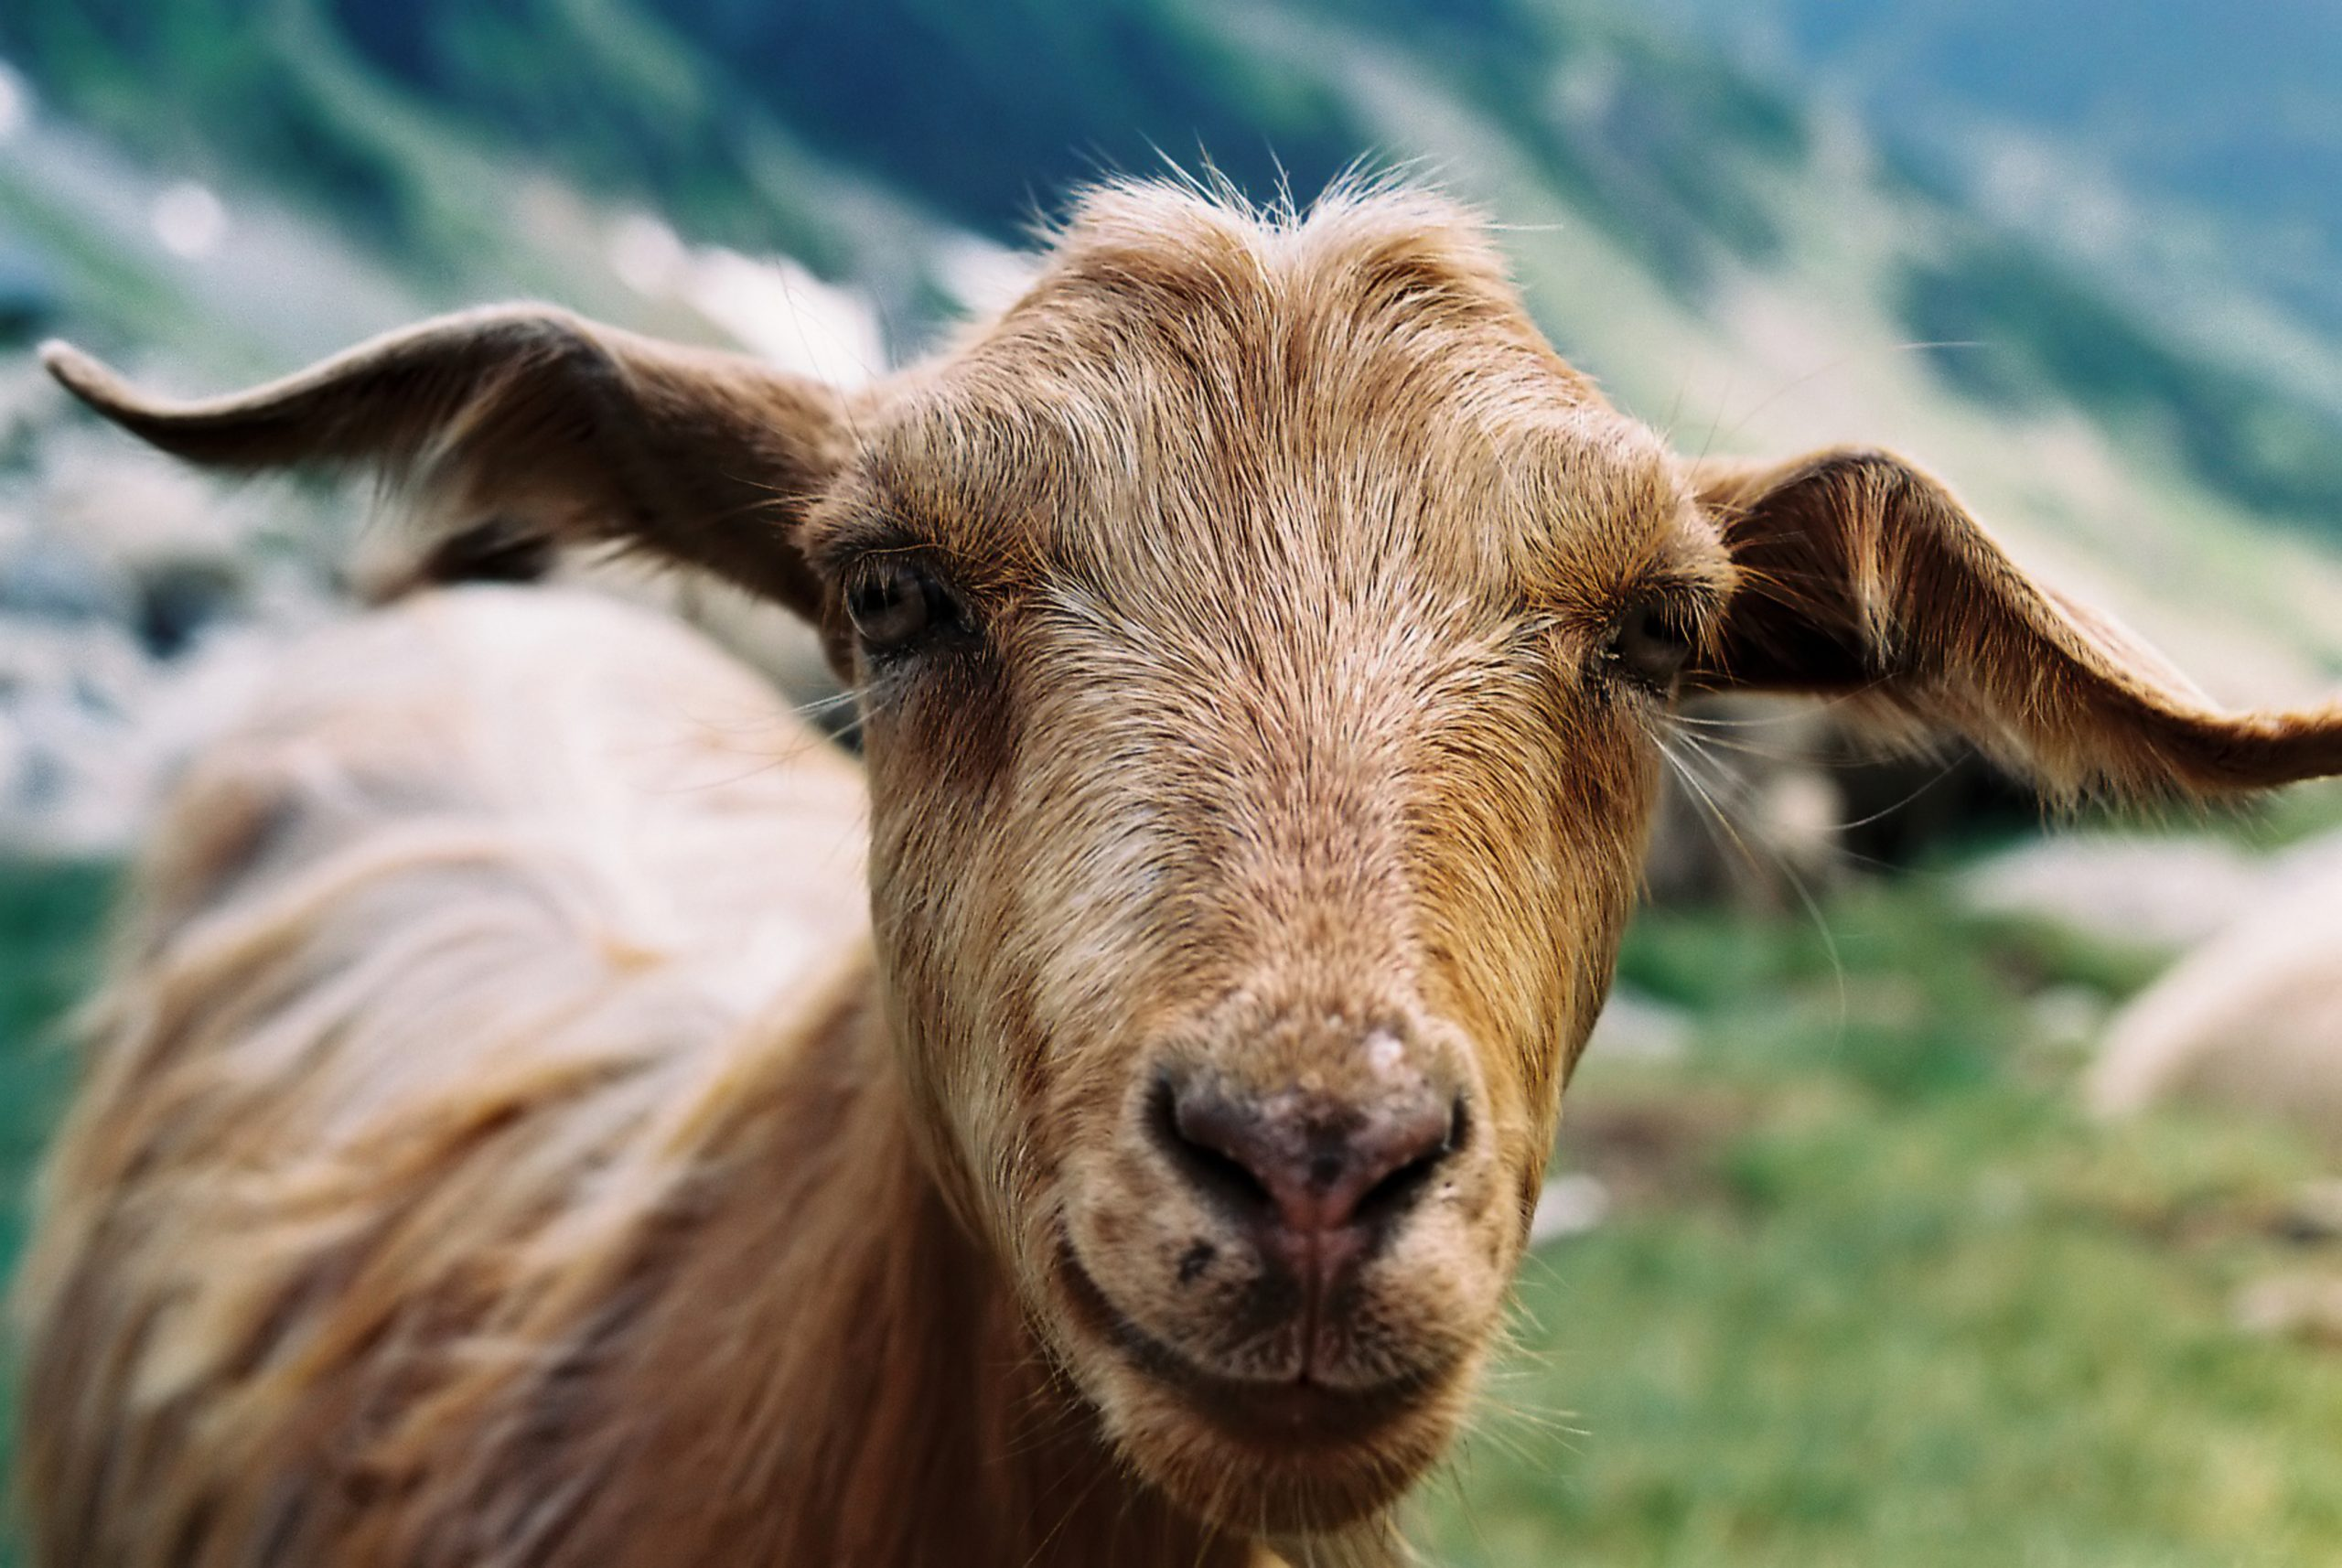 closeup picture of a goat